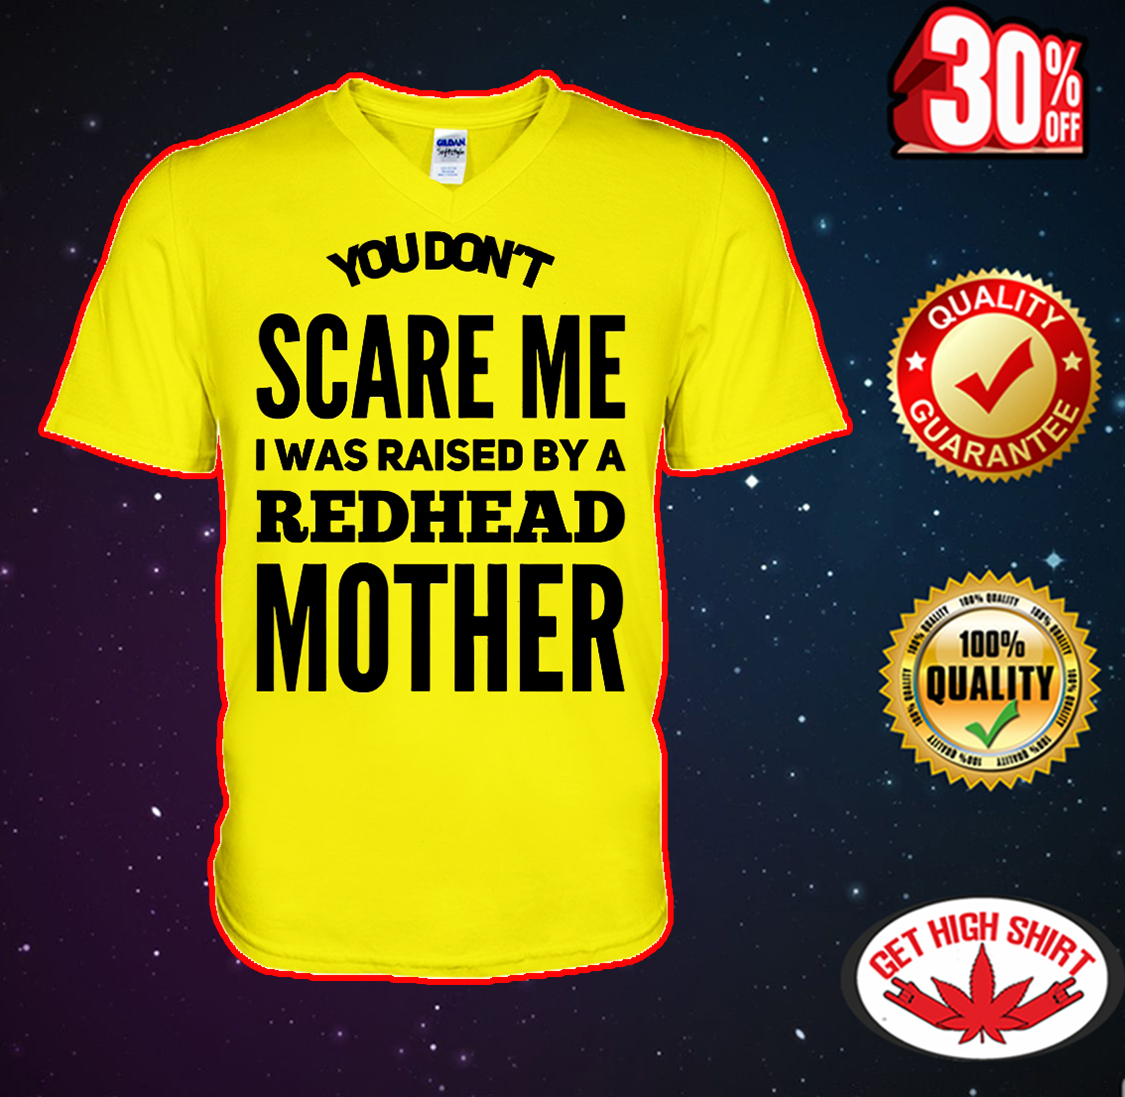 You don't scare me I was raised by a redhead mother v-neck